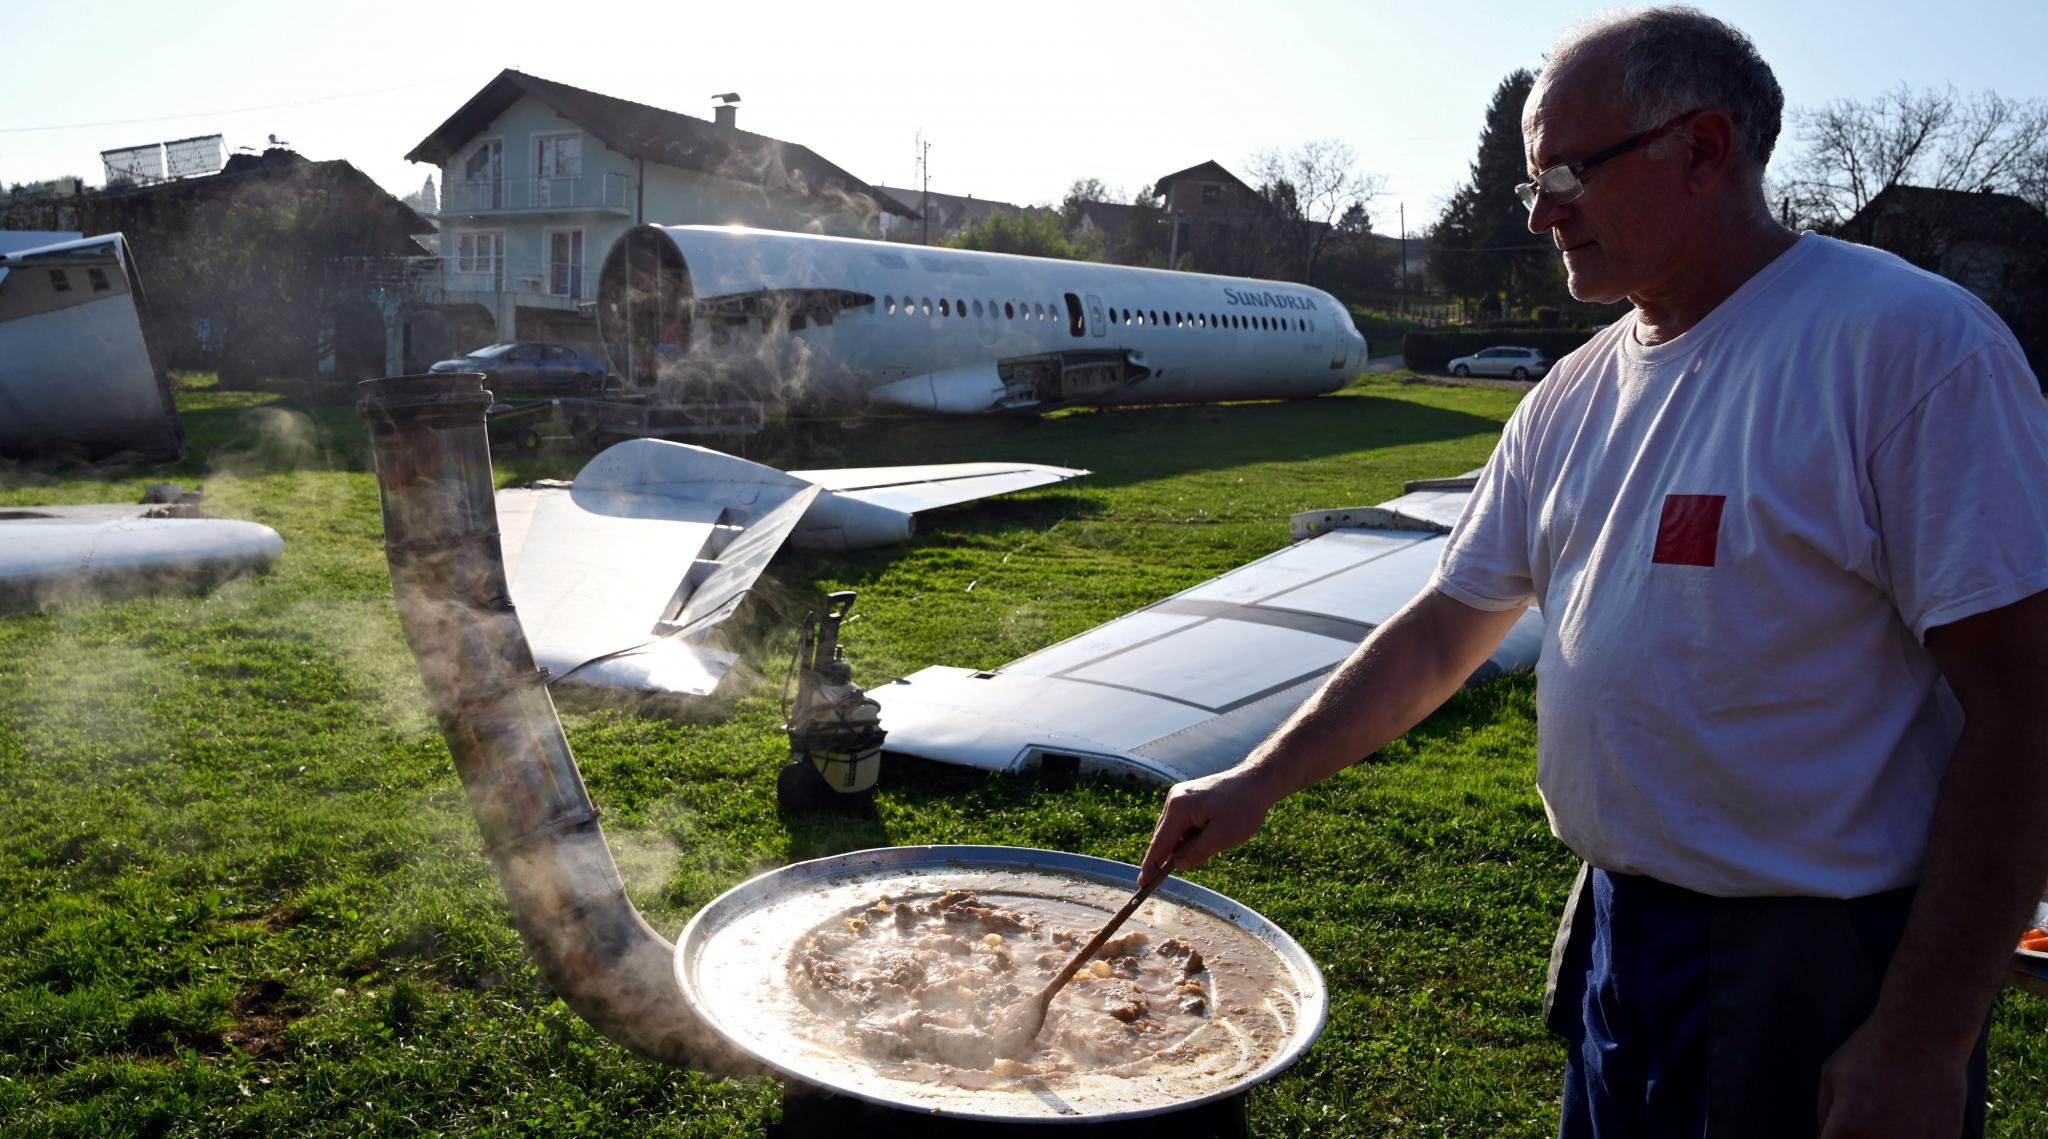 Plane Enthusiast Turns Garden Into Site for Plane Parties in Croatia